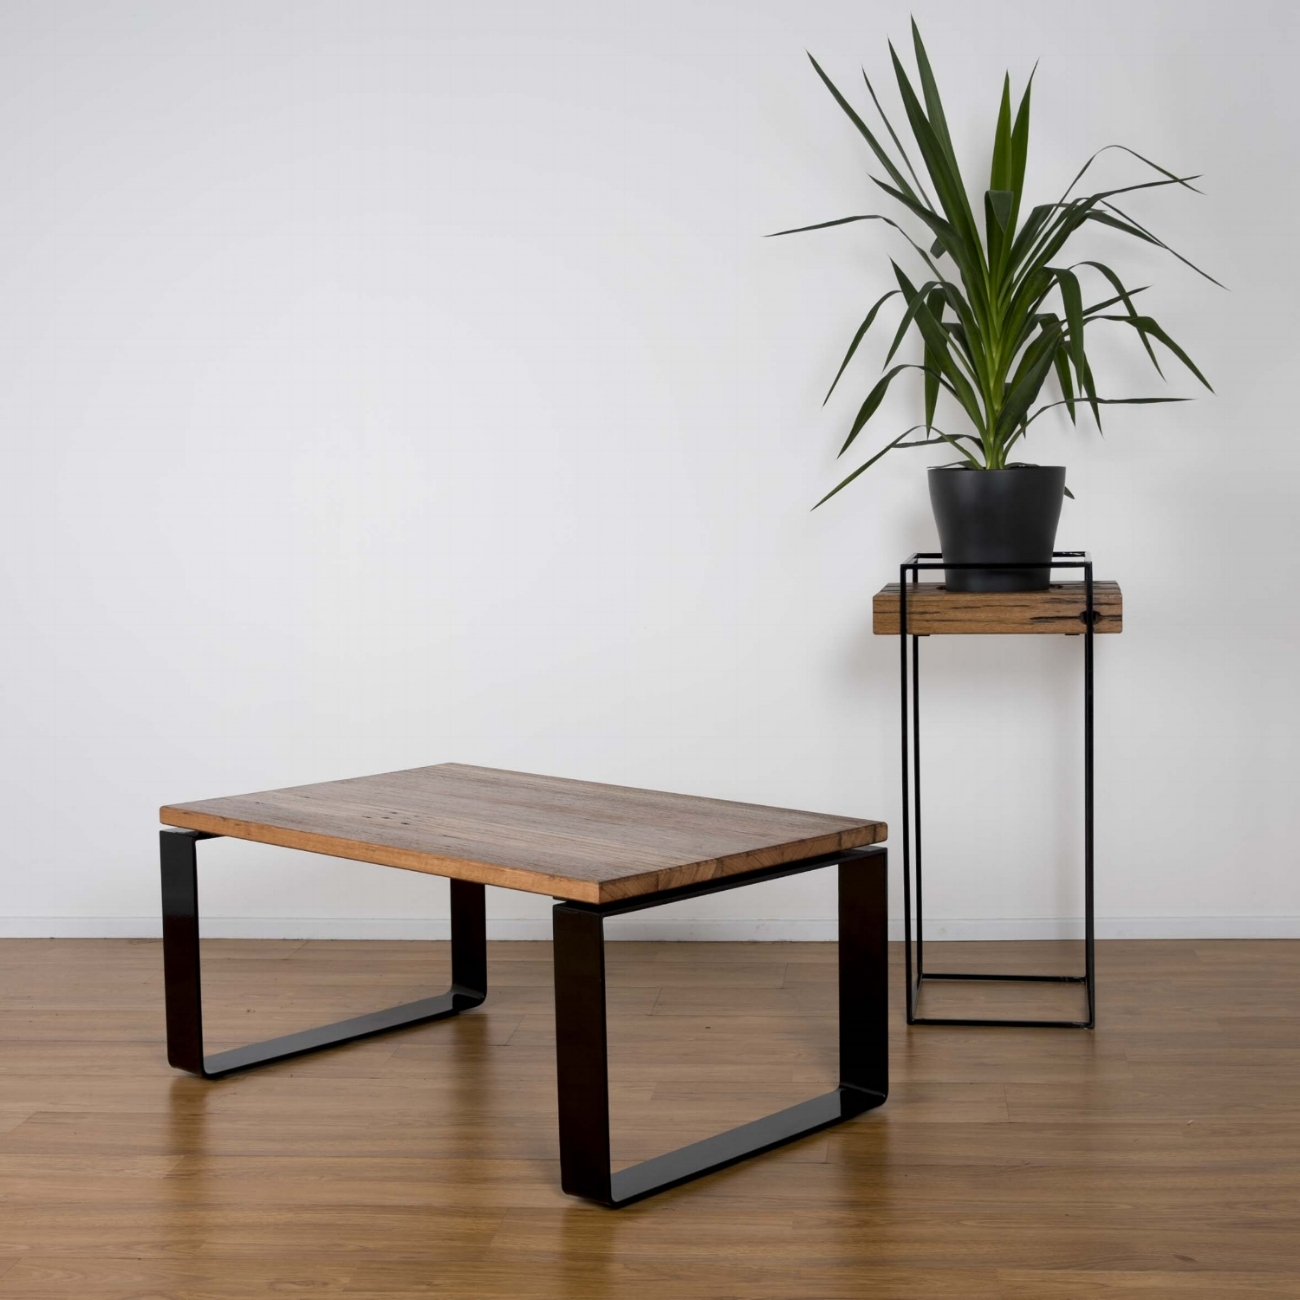 Loop Coffee Table & Eureka Planter